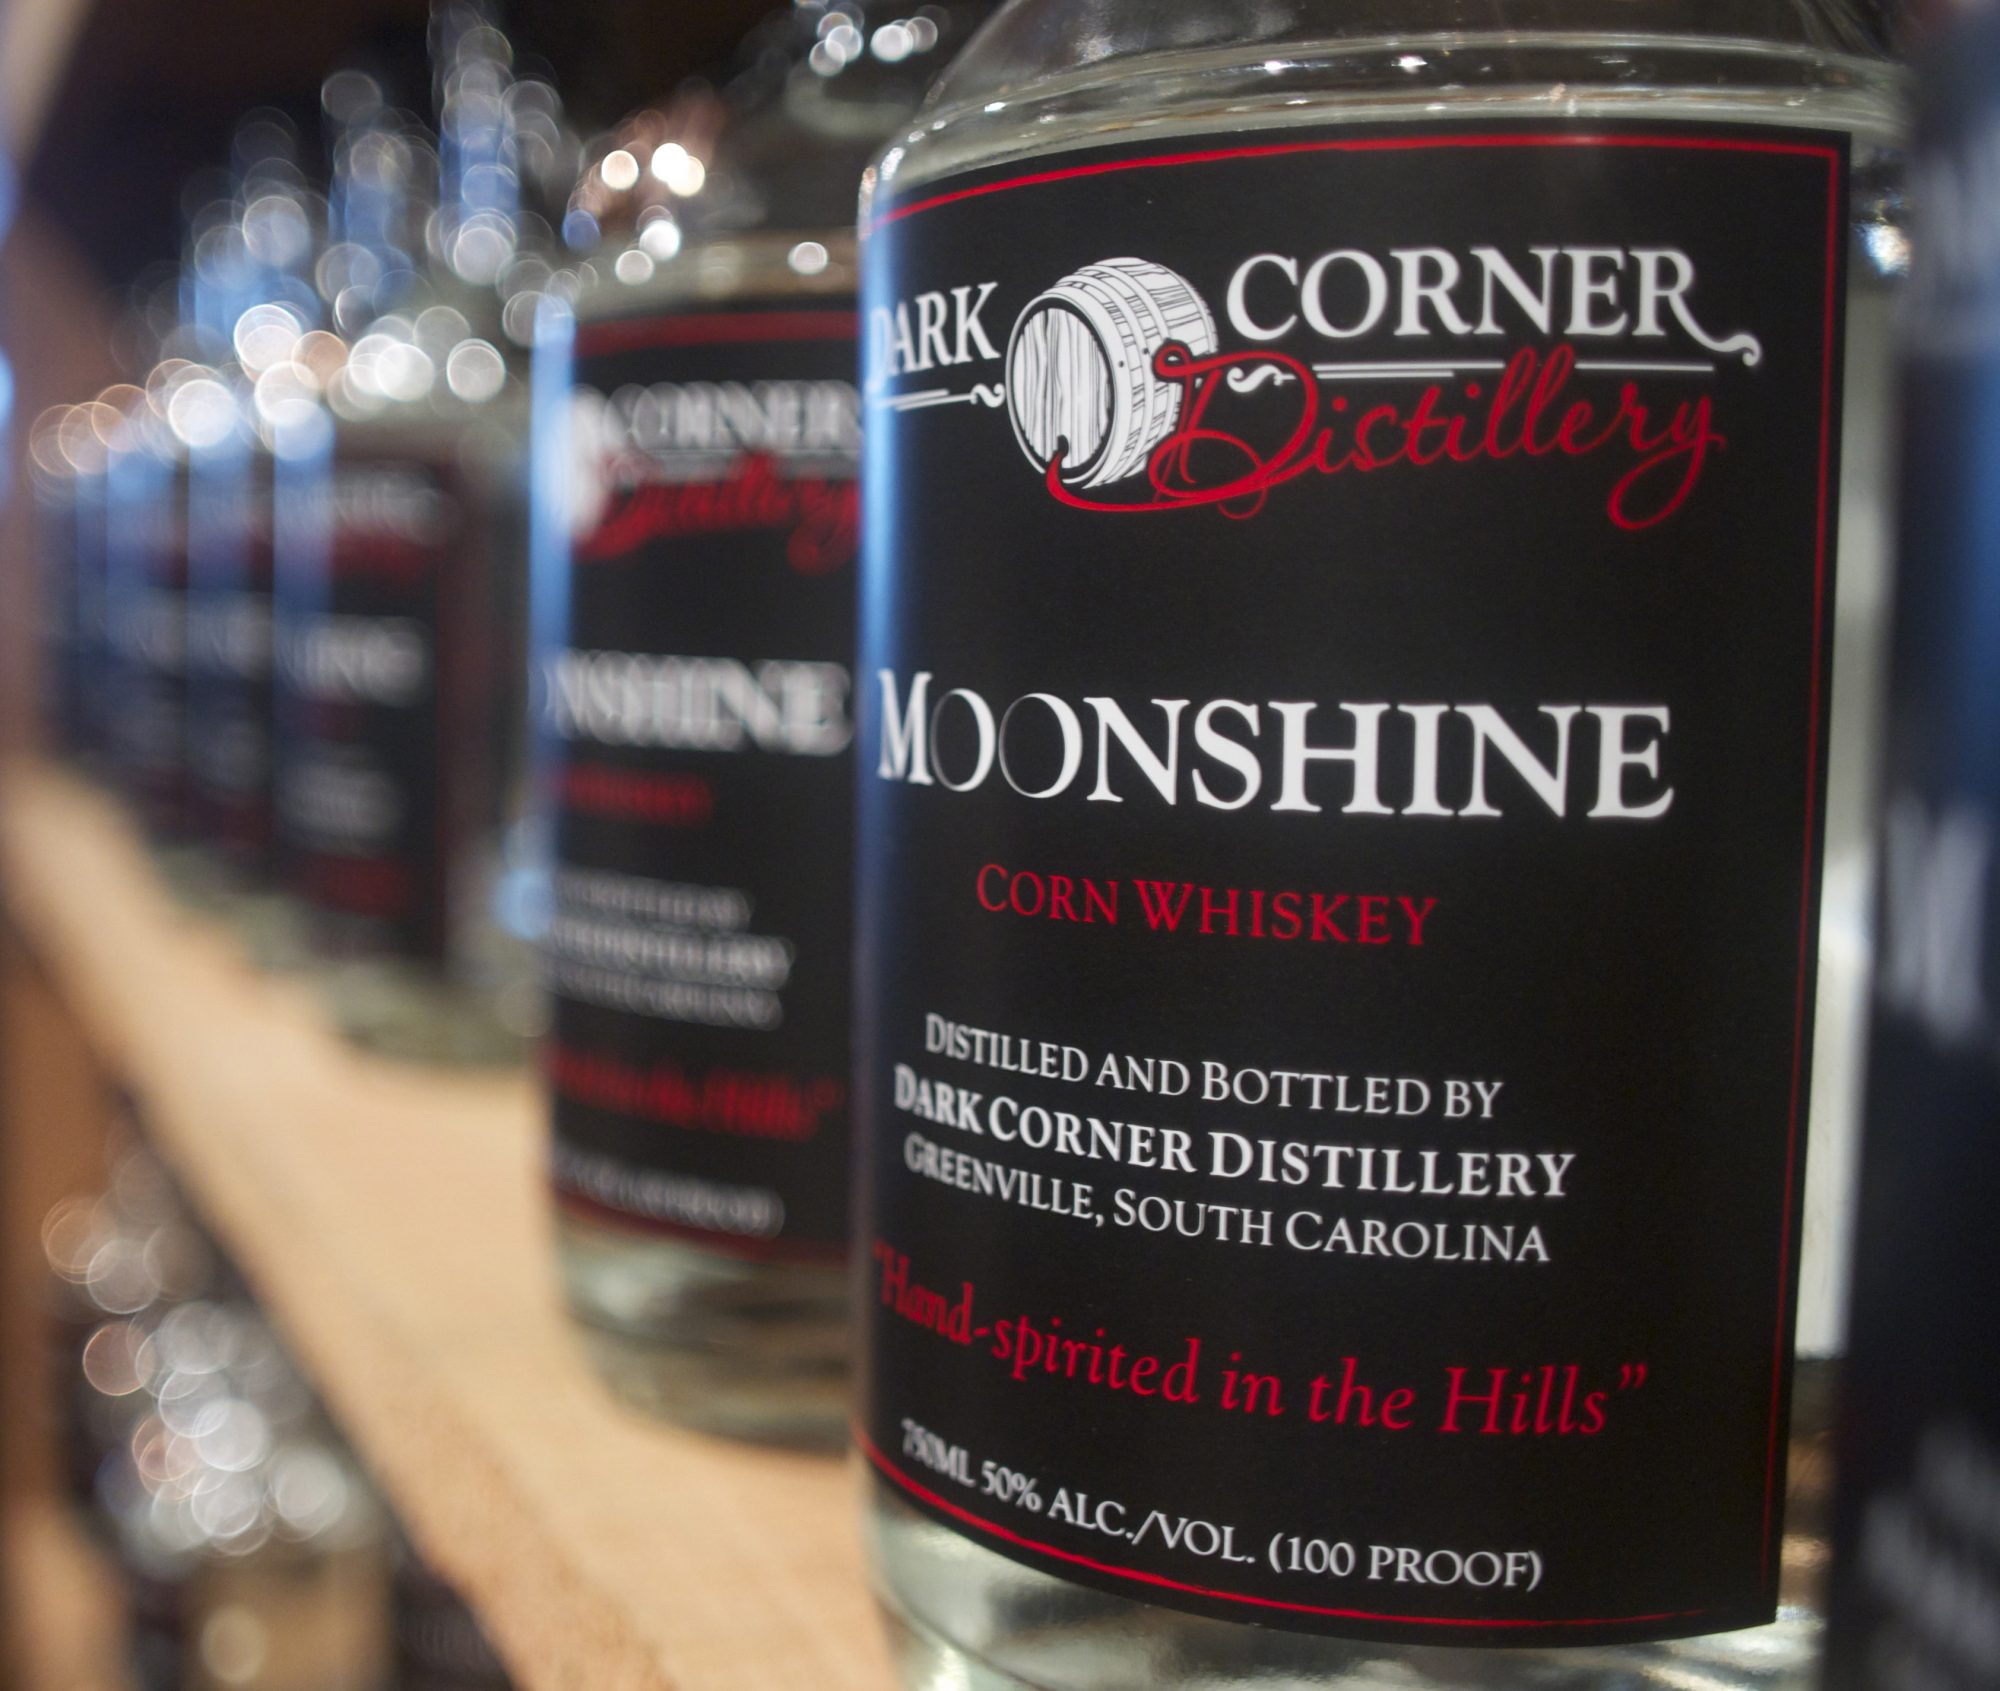 The Dark Corner Distillery Moonshine in Greenville, SC